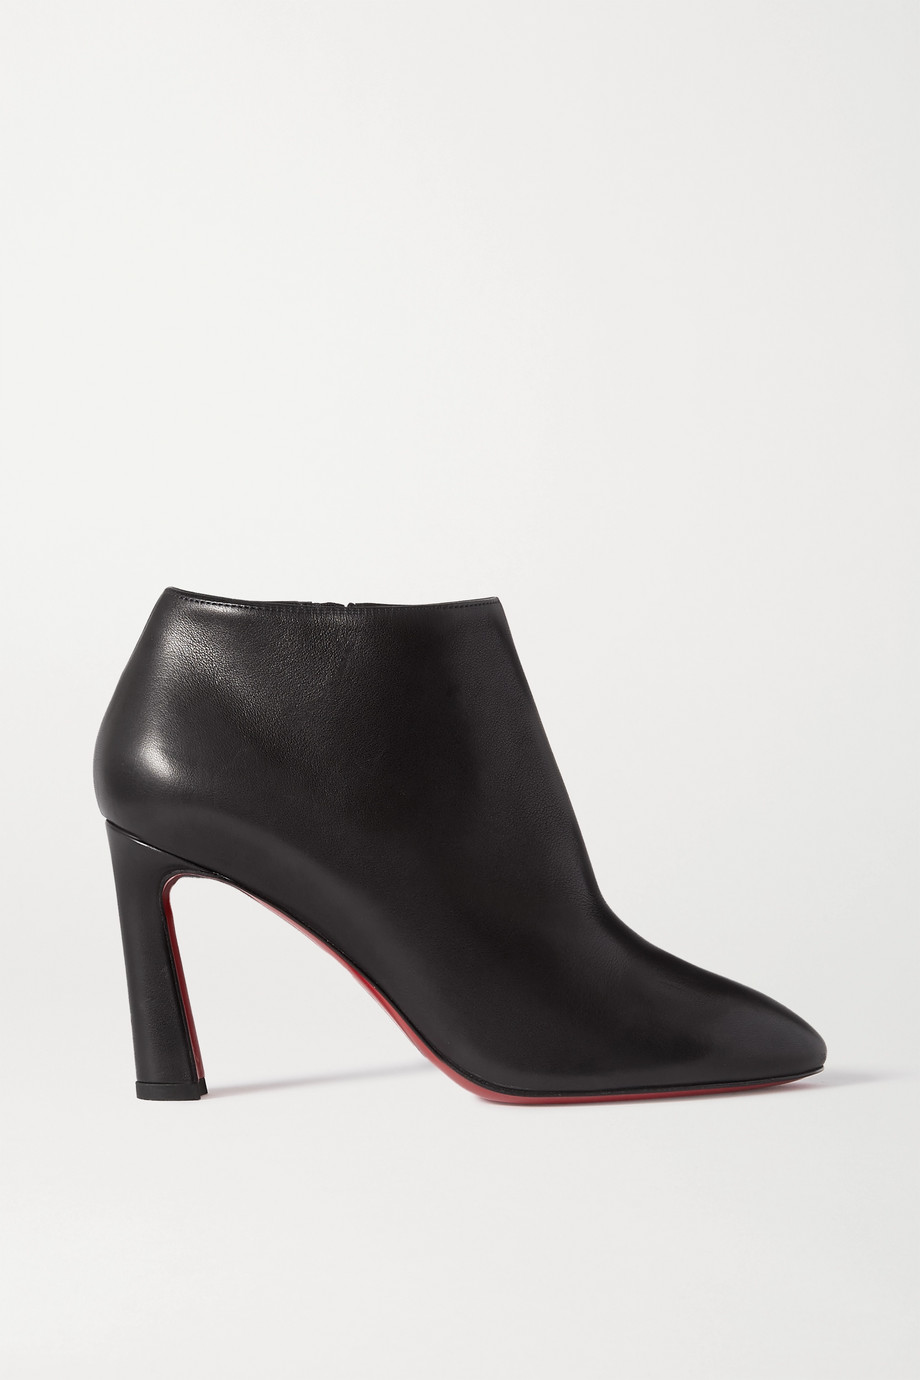 Christian Louboutin Eleonor 85 leather ankle boots